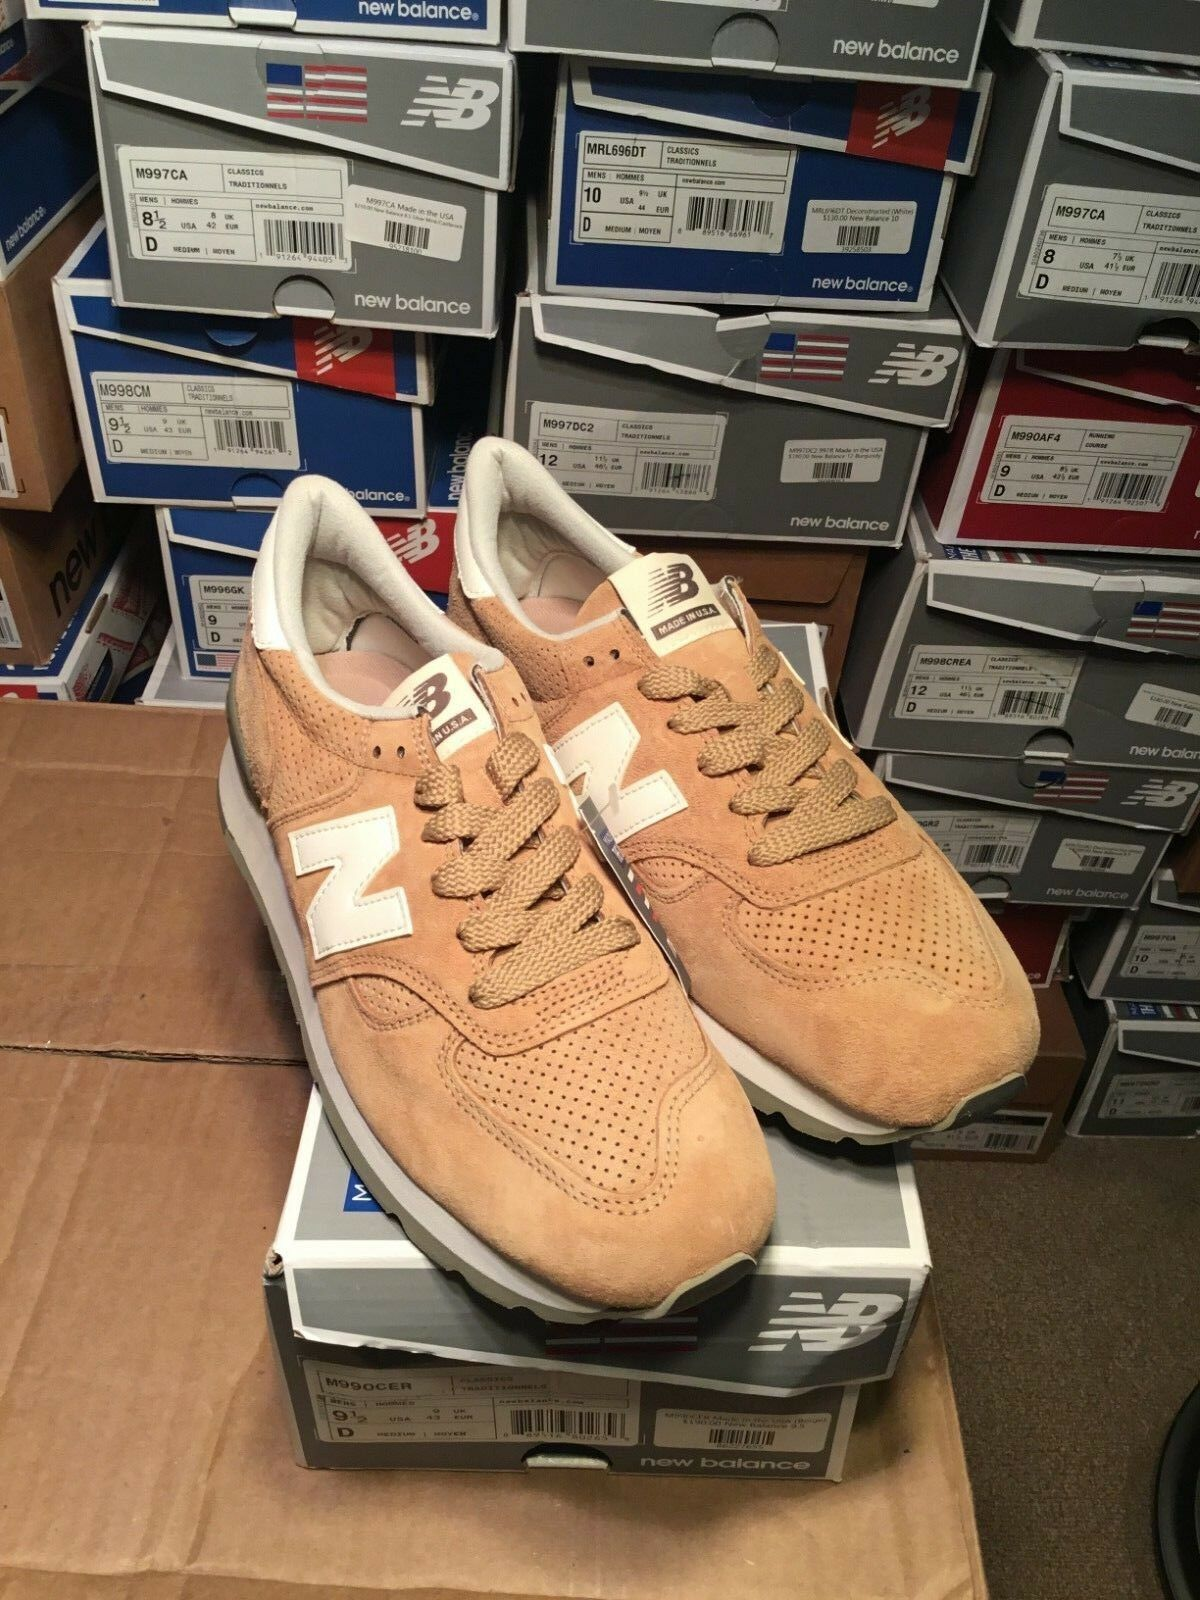 SALE NEW BALANCE 990 M990CER MADE IN THE USA Size 9.5 BRAND NEW IN HAND